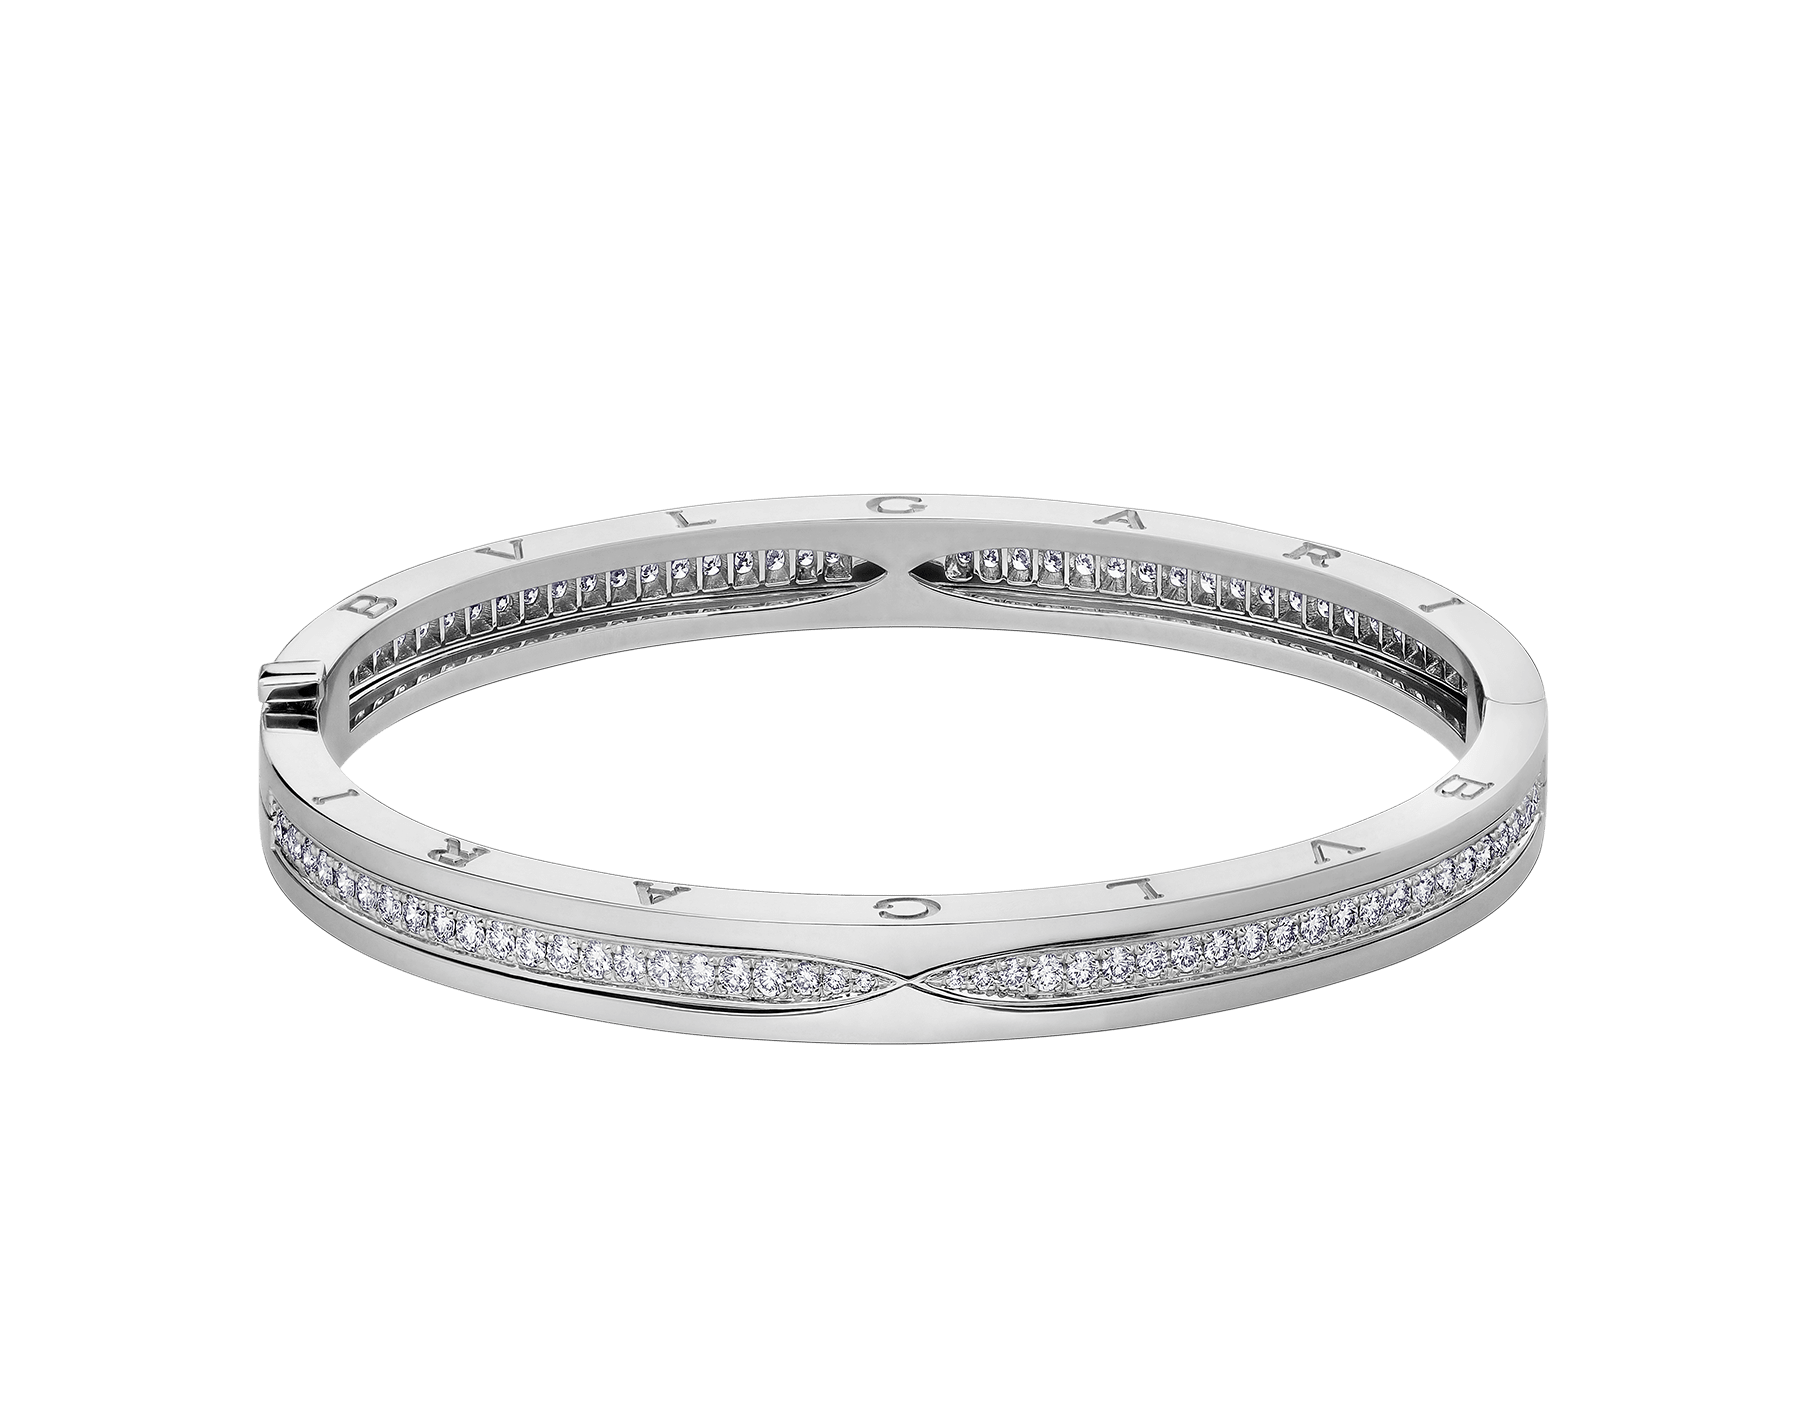 B.zero1 bangle bracelet in 18 kt white gold, set with pavé diamonds on the spiral. BR857483 image 2